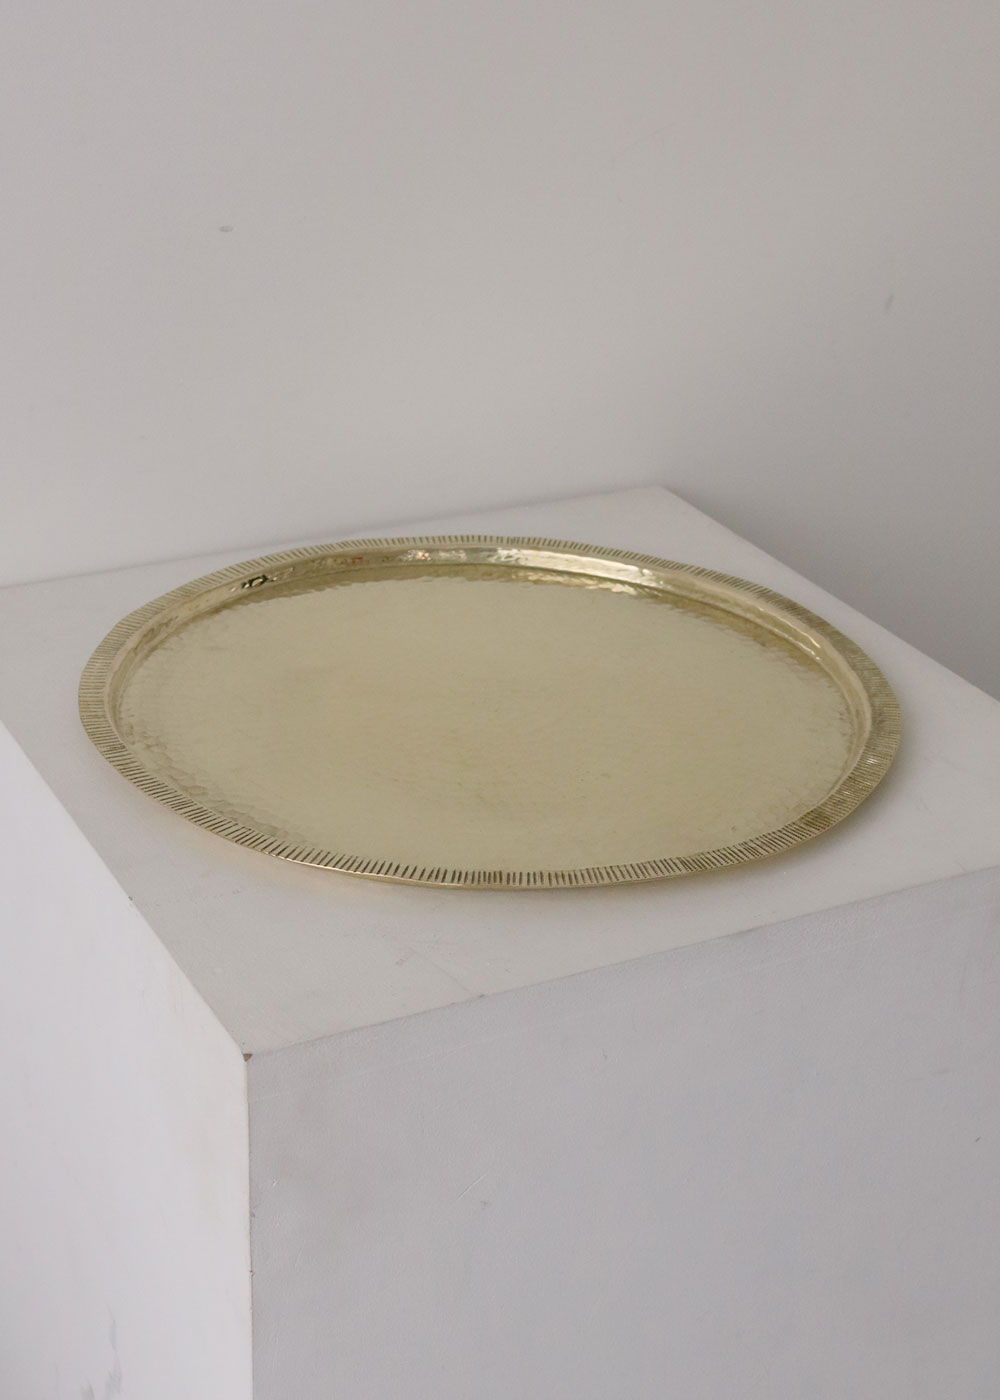 HAMMERED COPPER TRAY - yellow copper